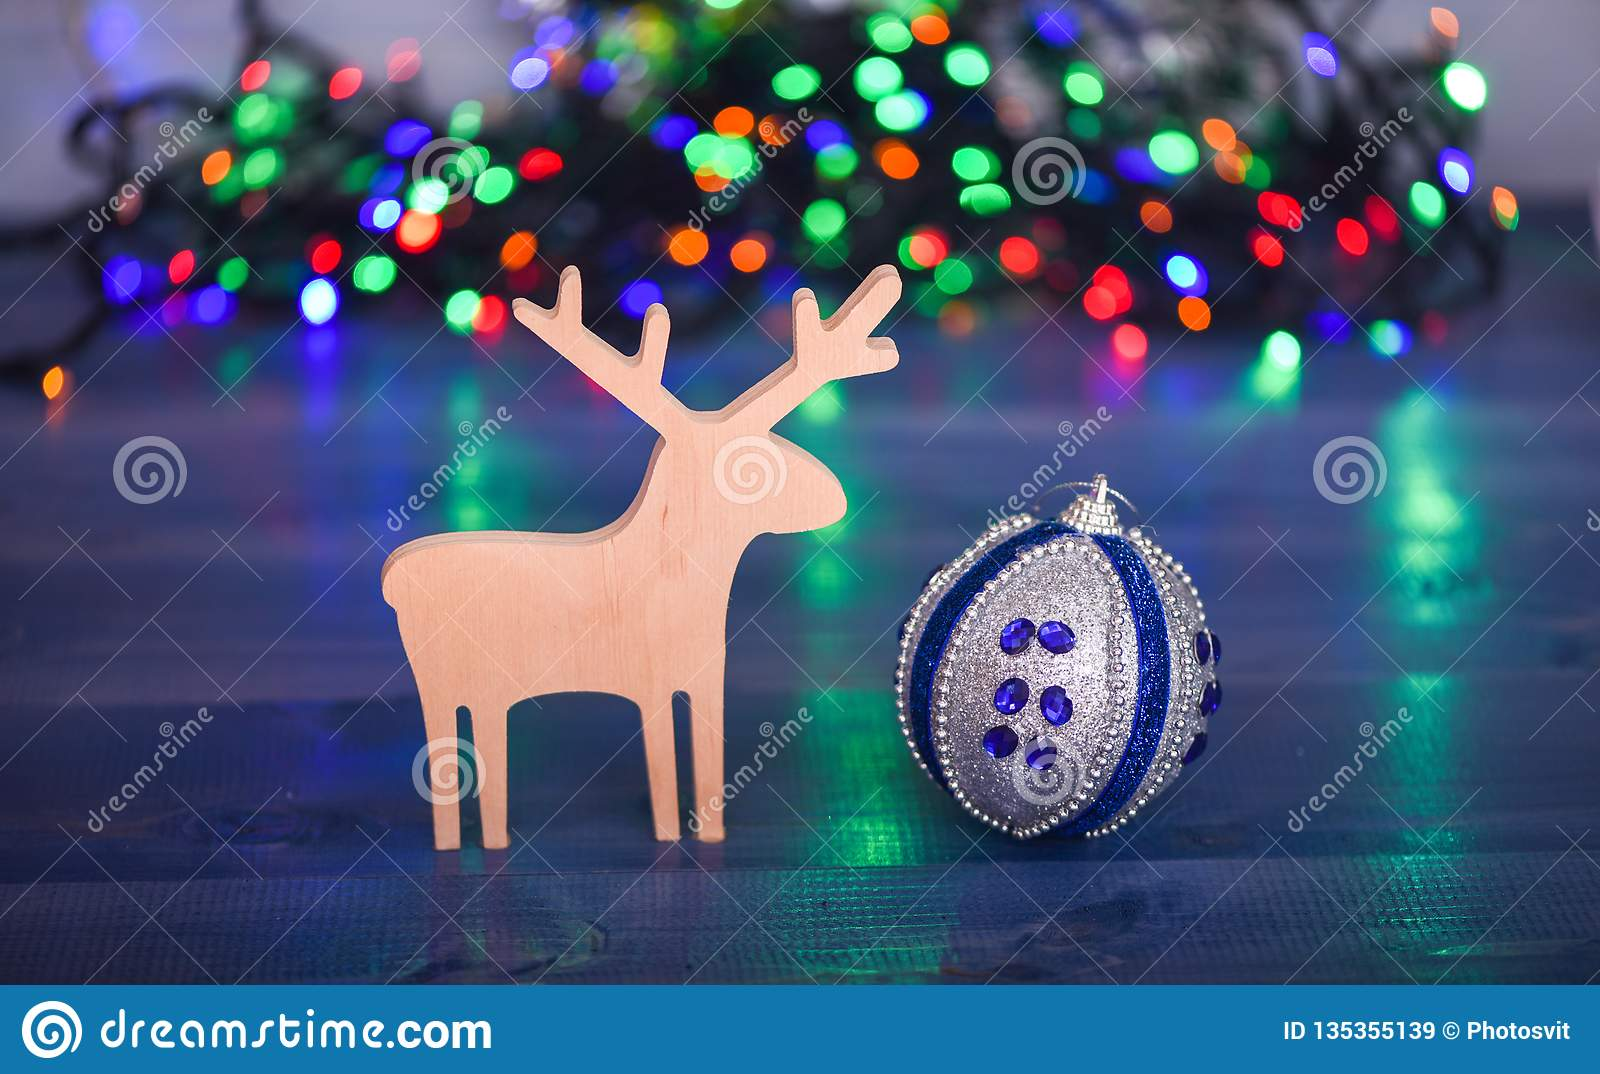 Colorful Christmas Lights Aesthetic.Ball With Ornaments And Wooden Deer Toy On Blurred Colorful